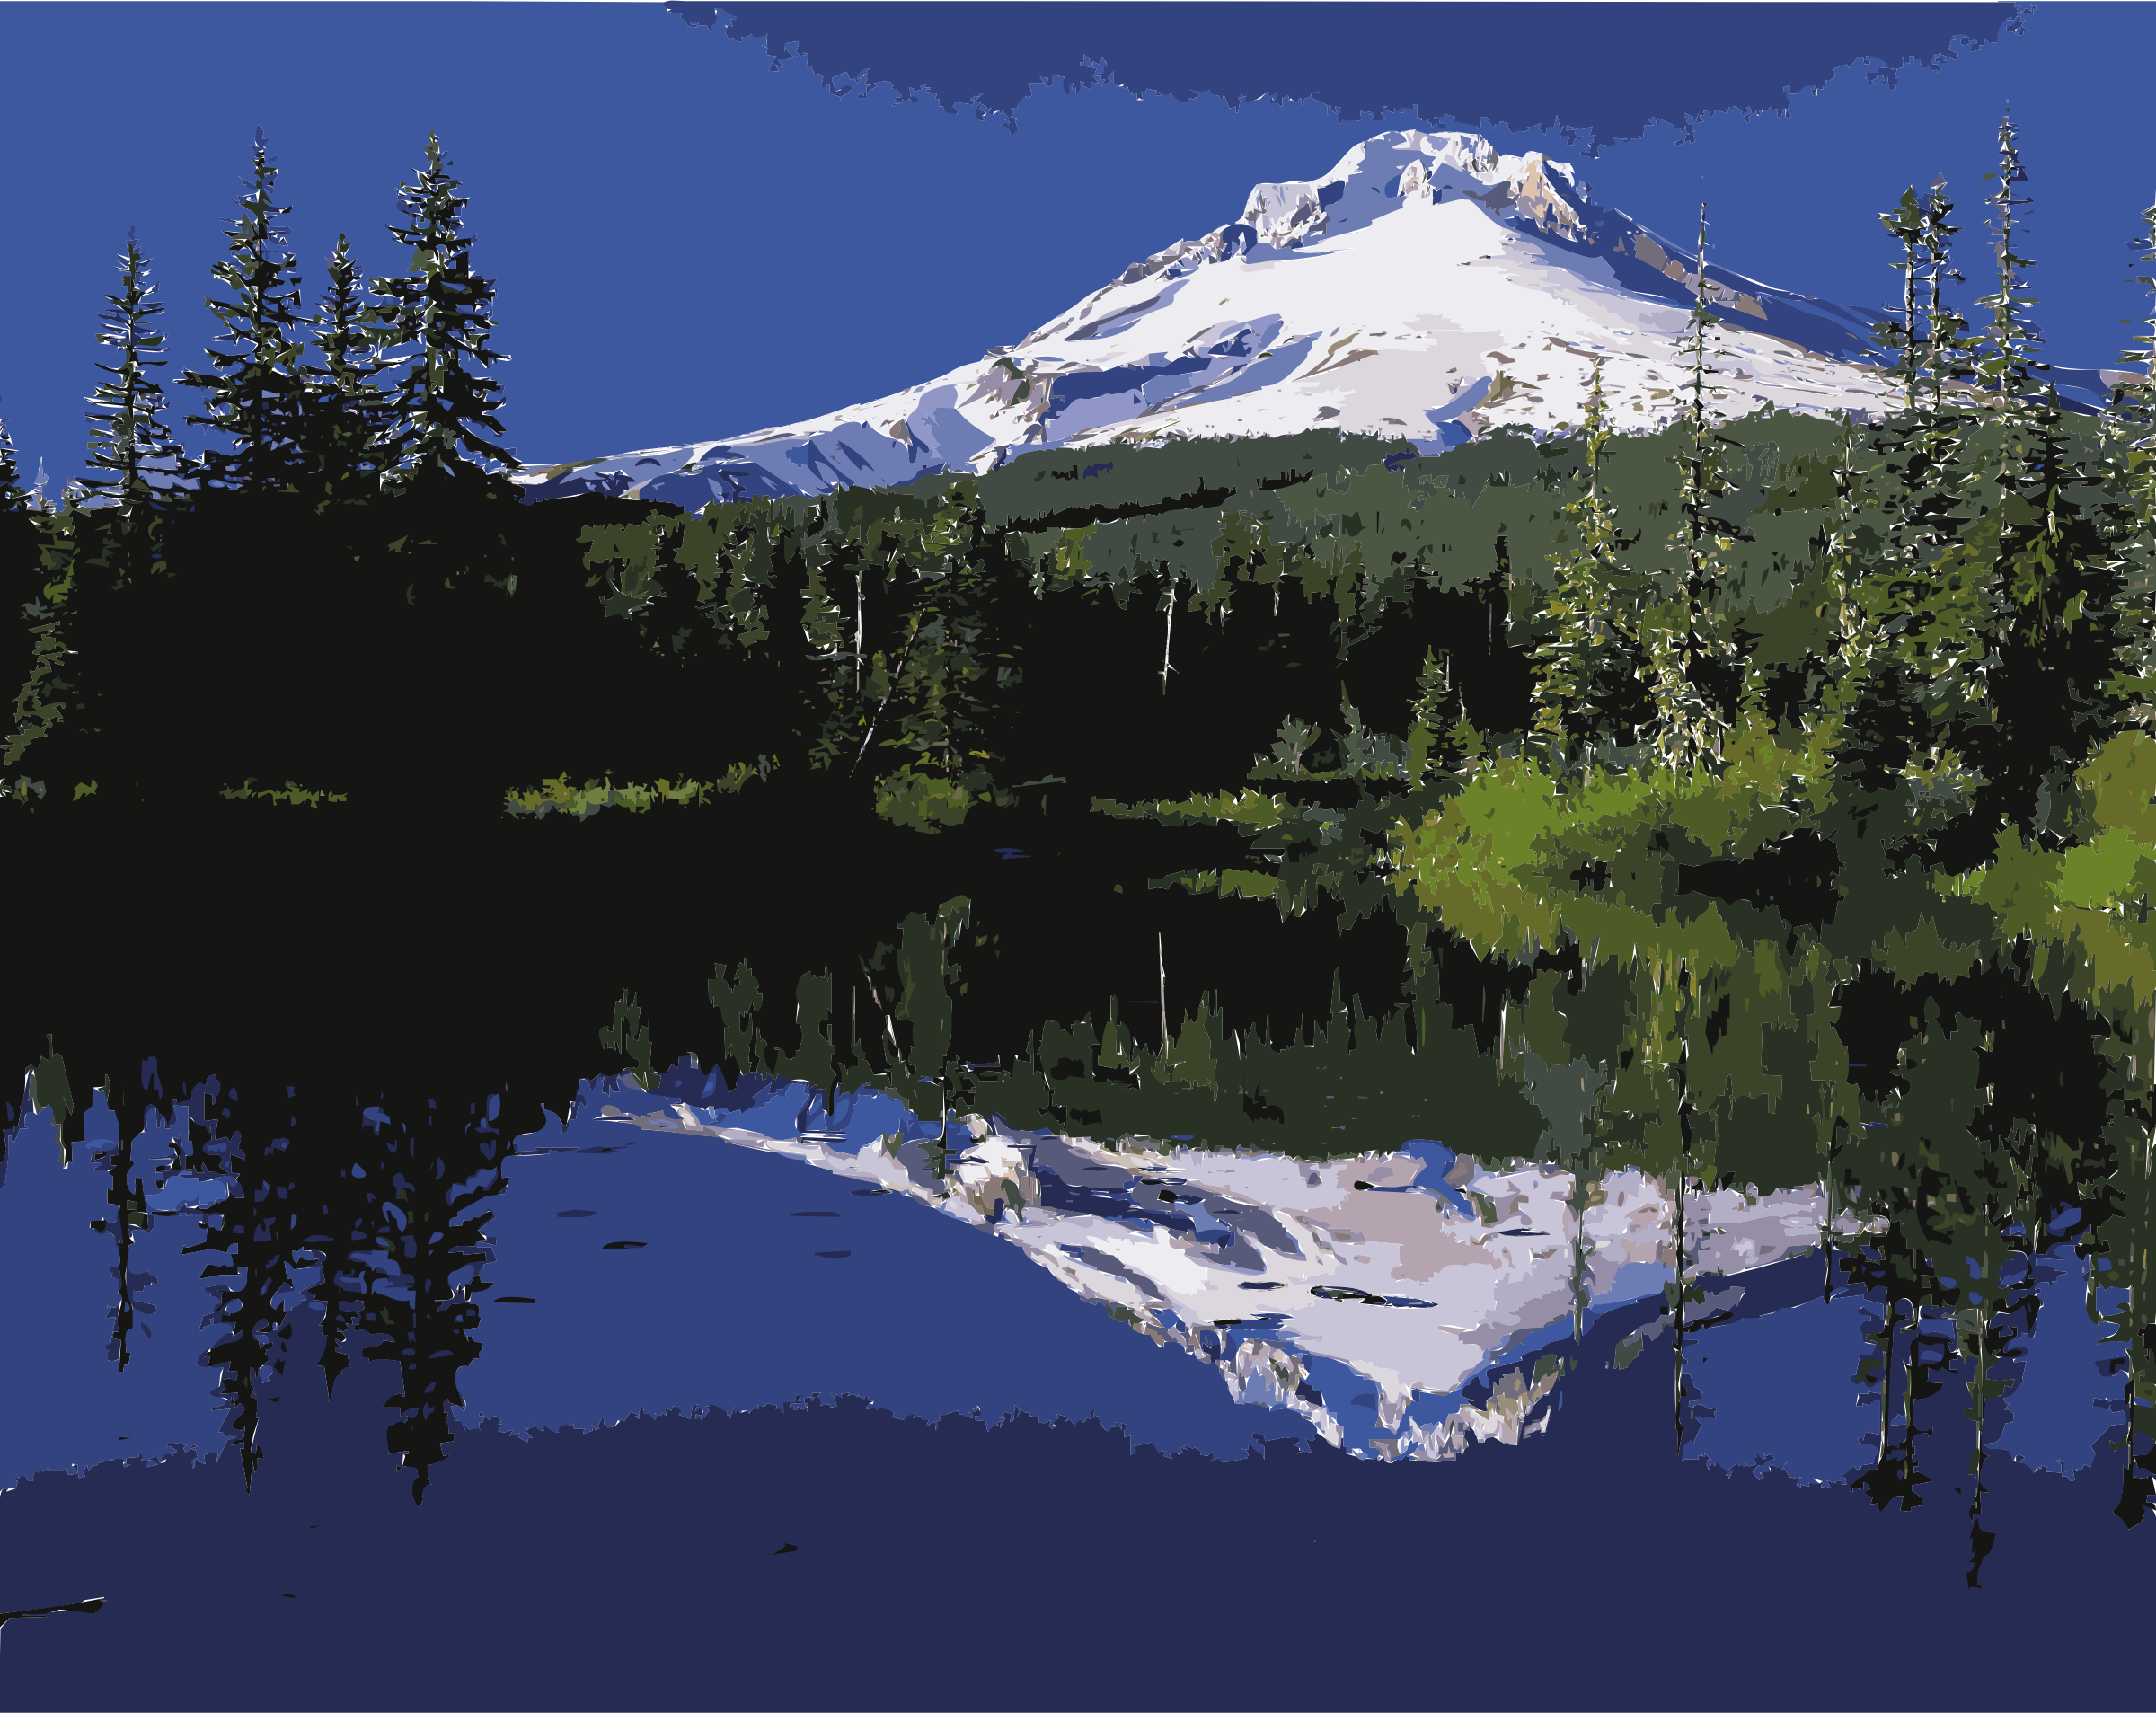 Mount Hood reflected in Mirror Lake, Oregon by 5n7epj+9741chlinrj78